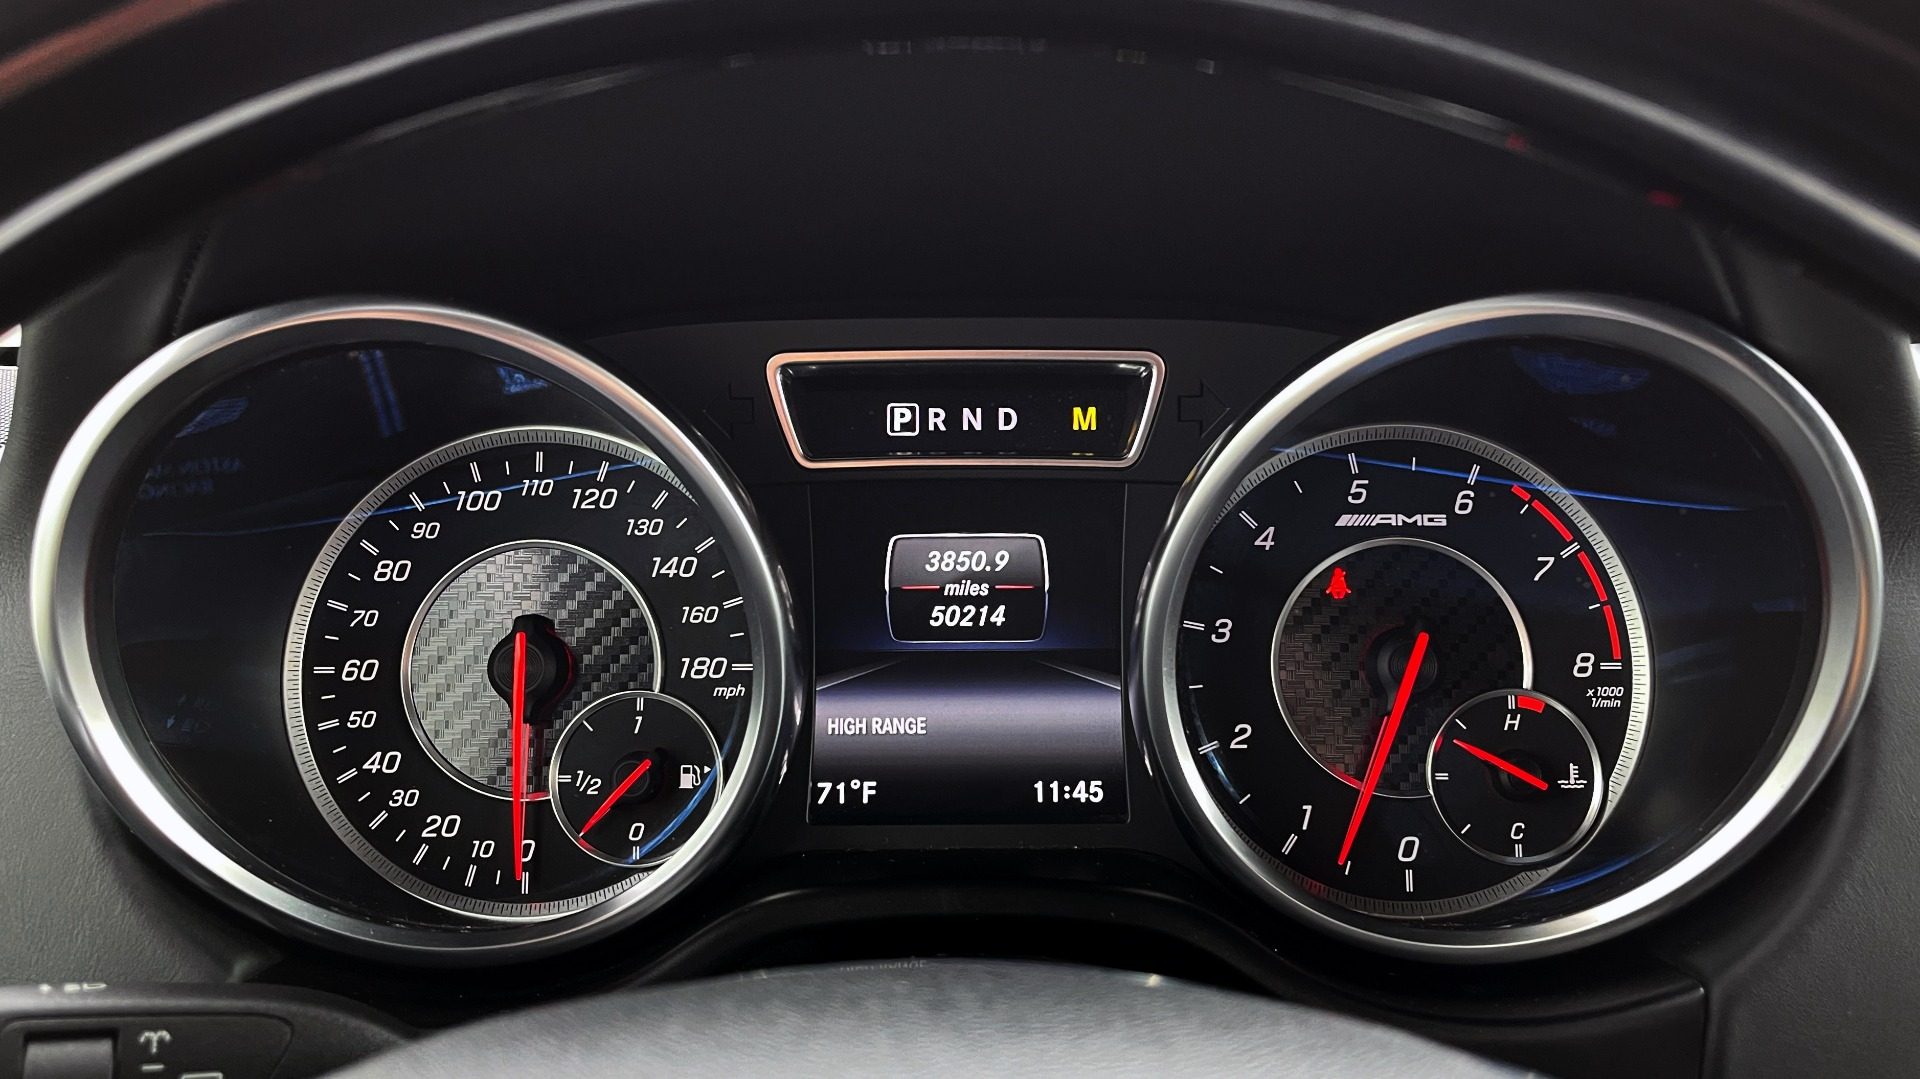 Used 2017 Mercedes-Benz G-CLASS AMG G 63 / DESIGNO PKG / NAV / SUNROOF / H/K SND / REARVIEW for sale $124,999 at Formula Imports in Charlotte NC 28227 36